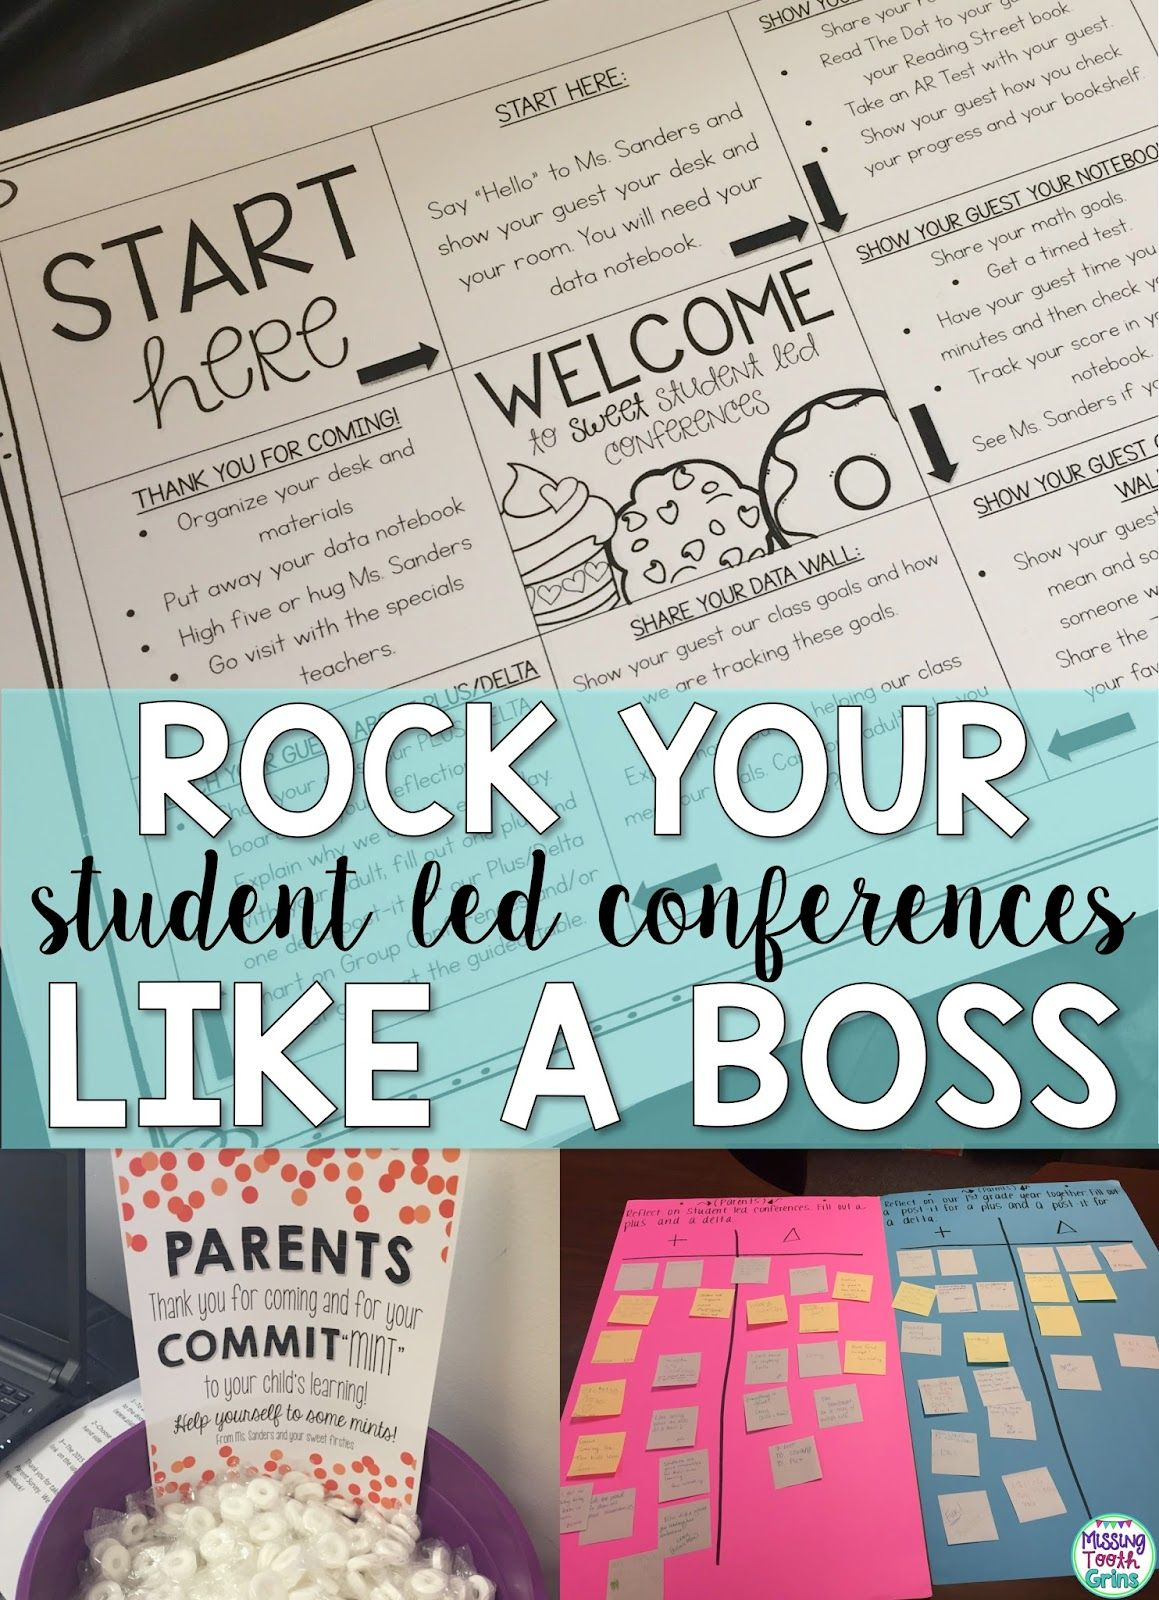 Missing Tooth Grins Rock Your Student Led Conferences